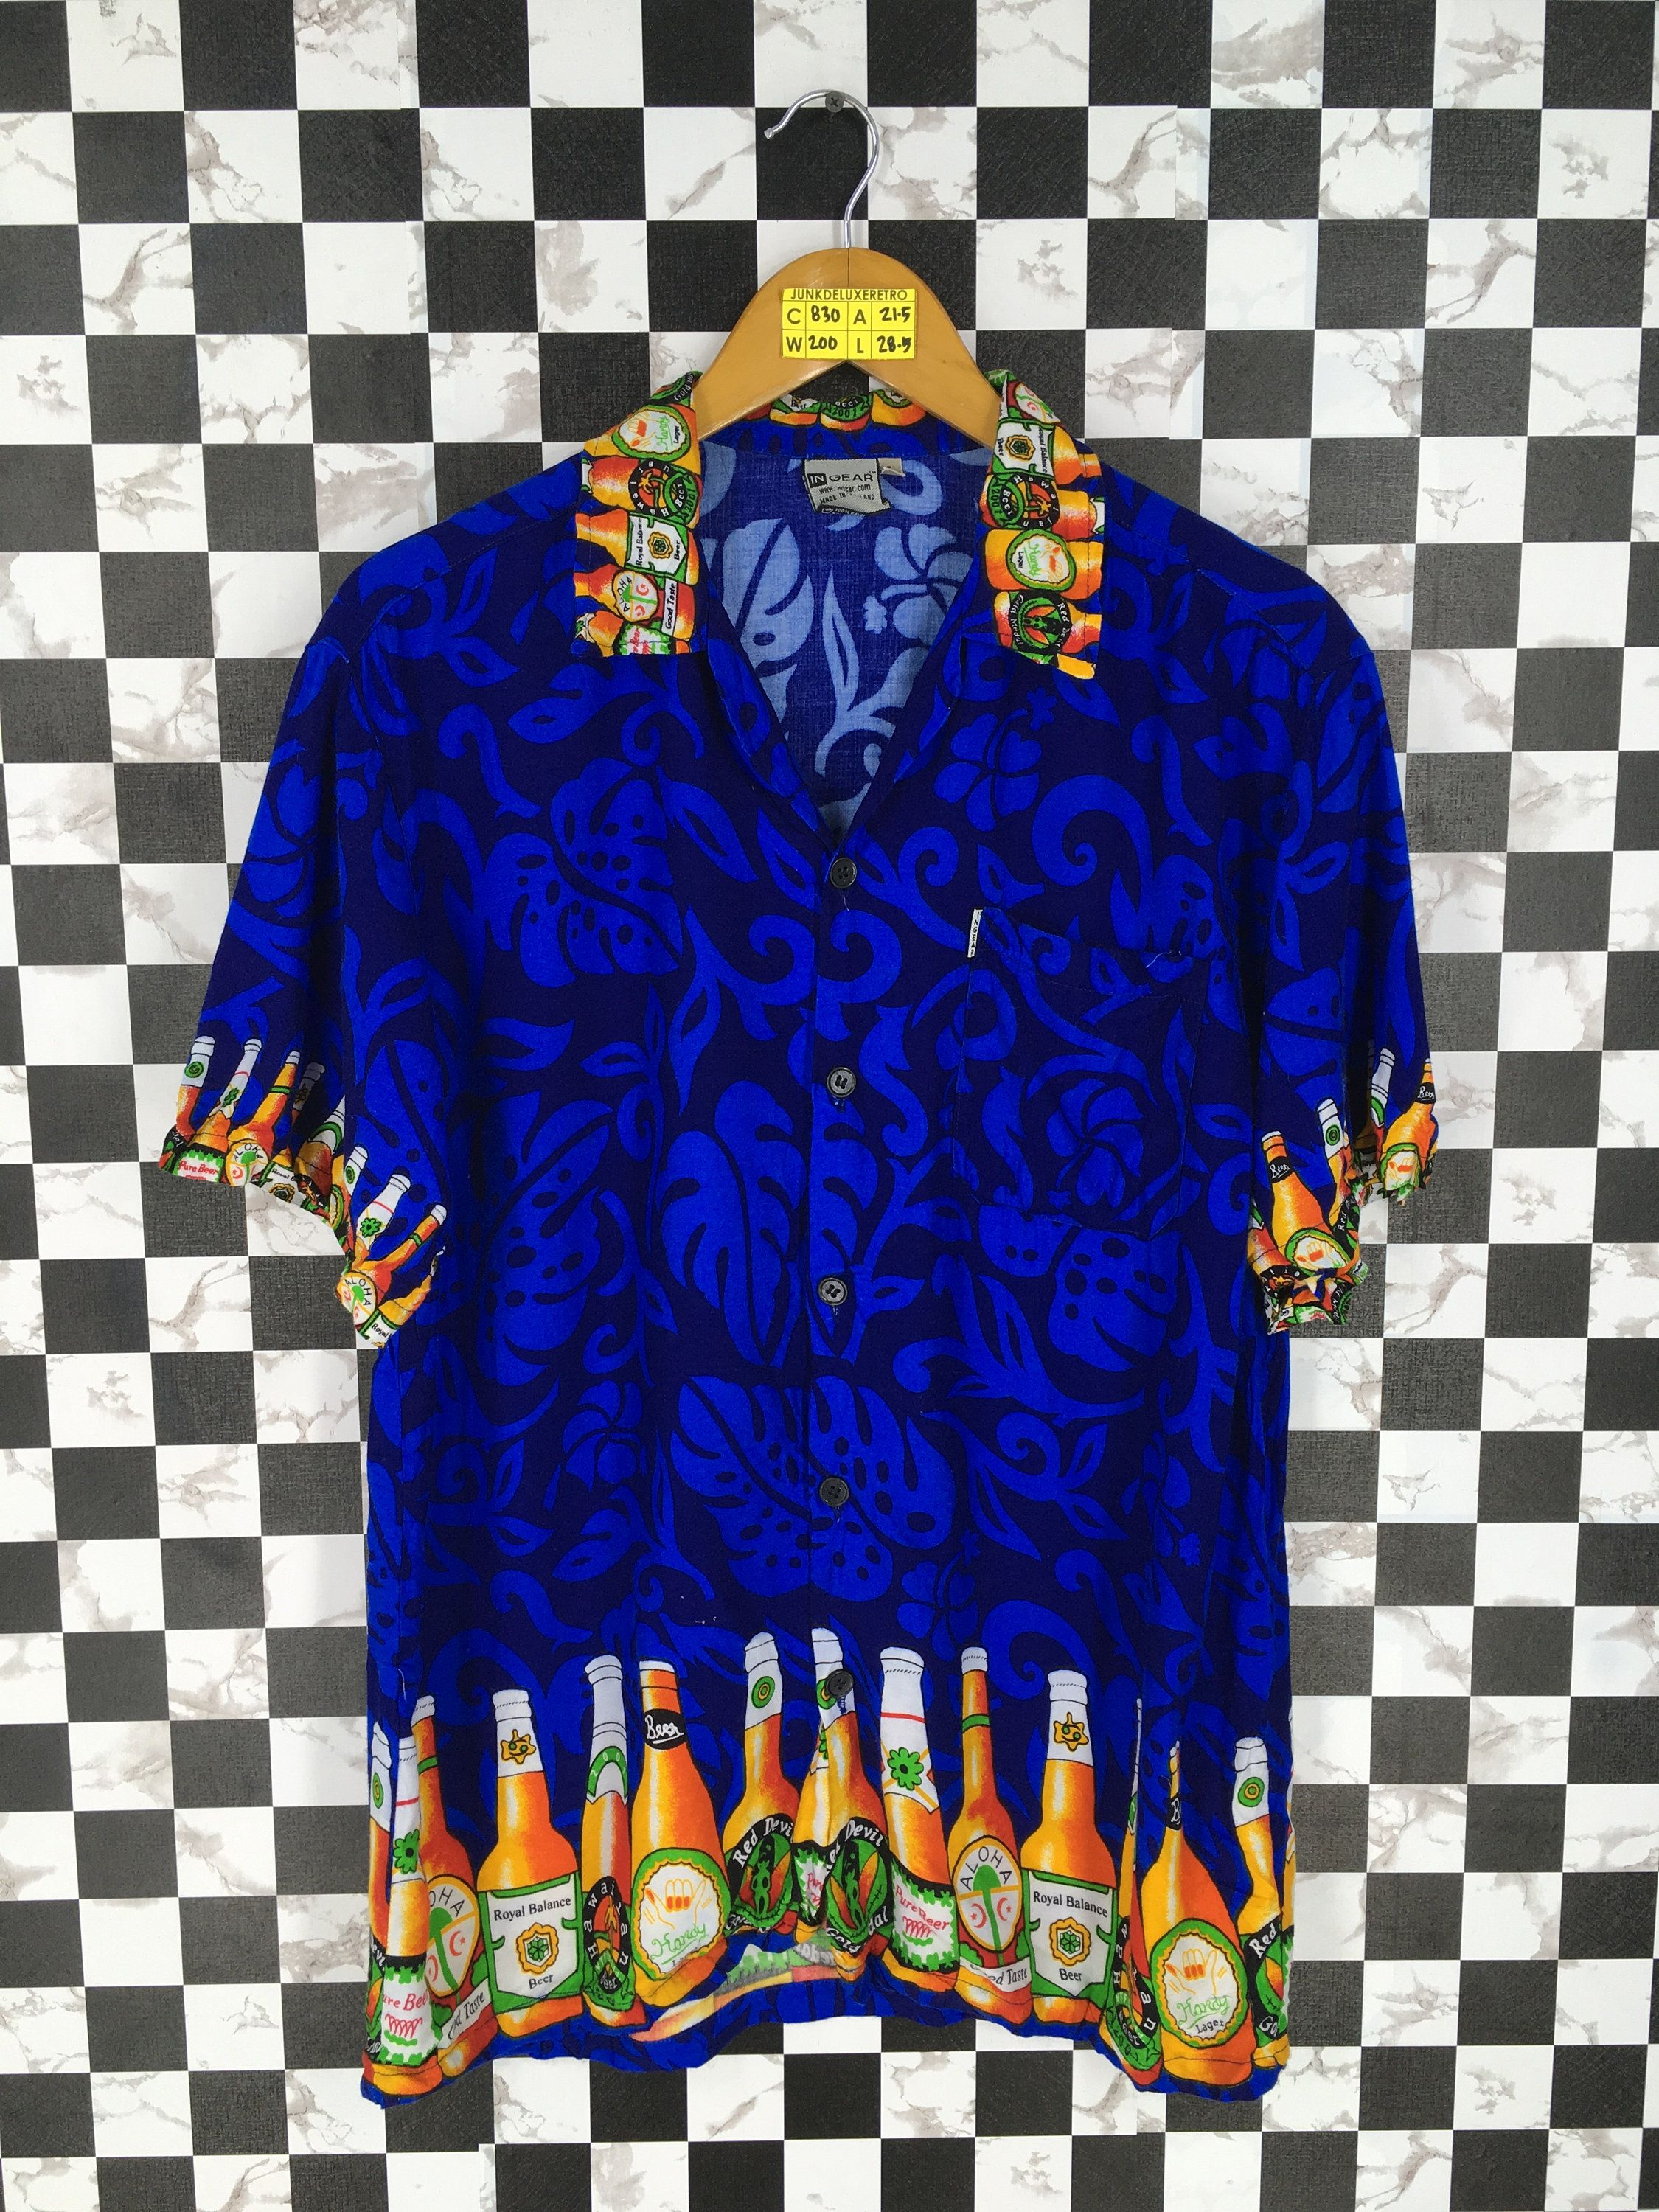 7b90af1f HAWAIIAN Shirt Unisex Large Vintage 1980s Hawaii Abstract Tequila Beach  Party Shirt Aloha Beach Blue Rayon Shirt Buttondown Size L by  JunkDeluxeRetro on ...